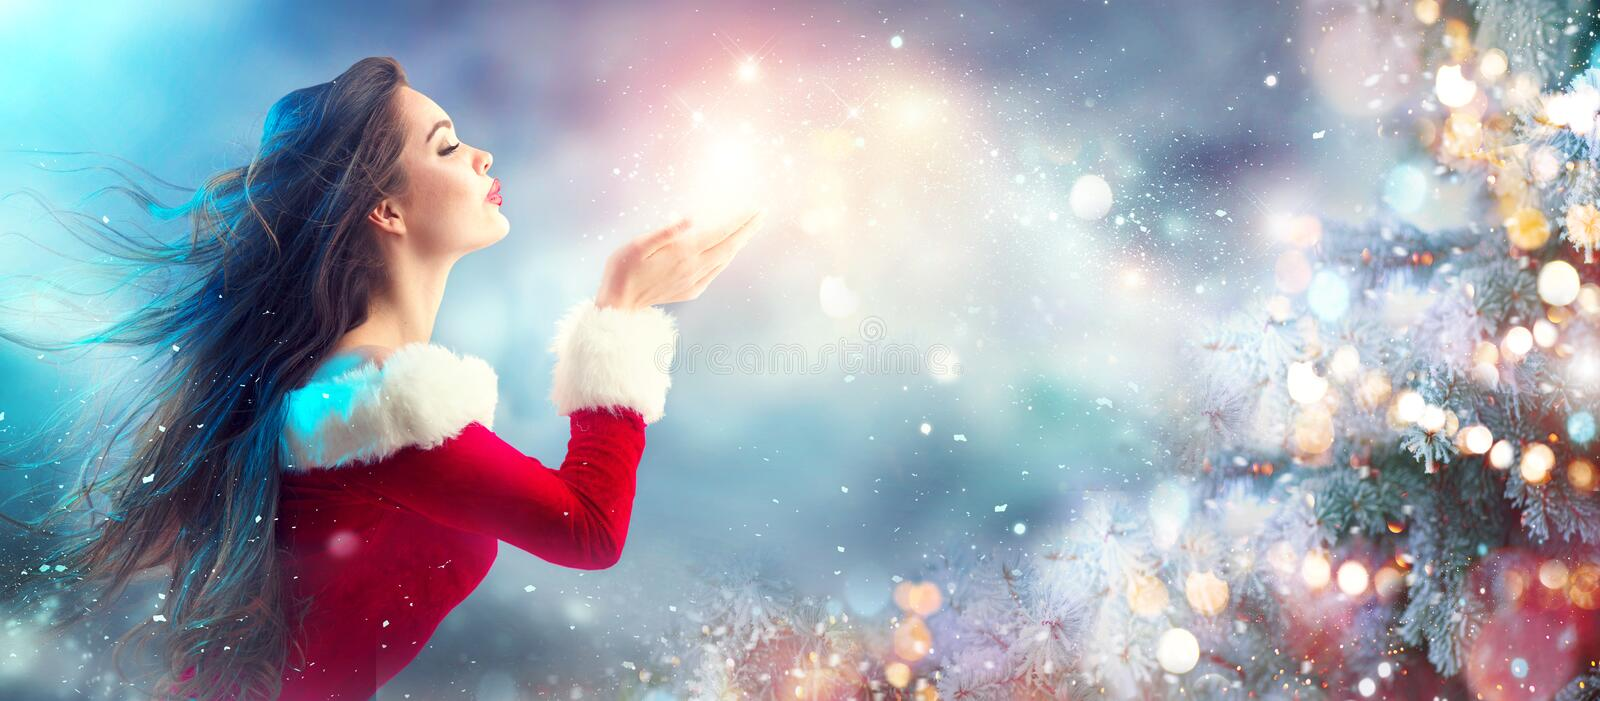 Christmas scene. Santa. Brunette young woman in party costume blowing snow. Over holiday blurred background stock image